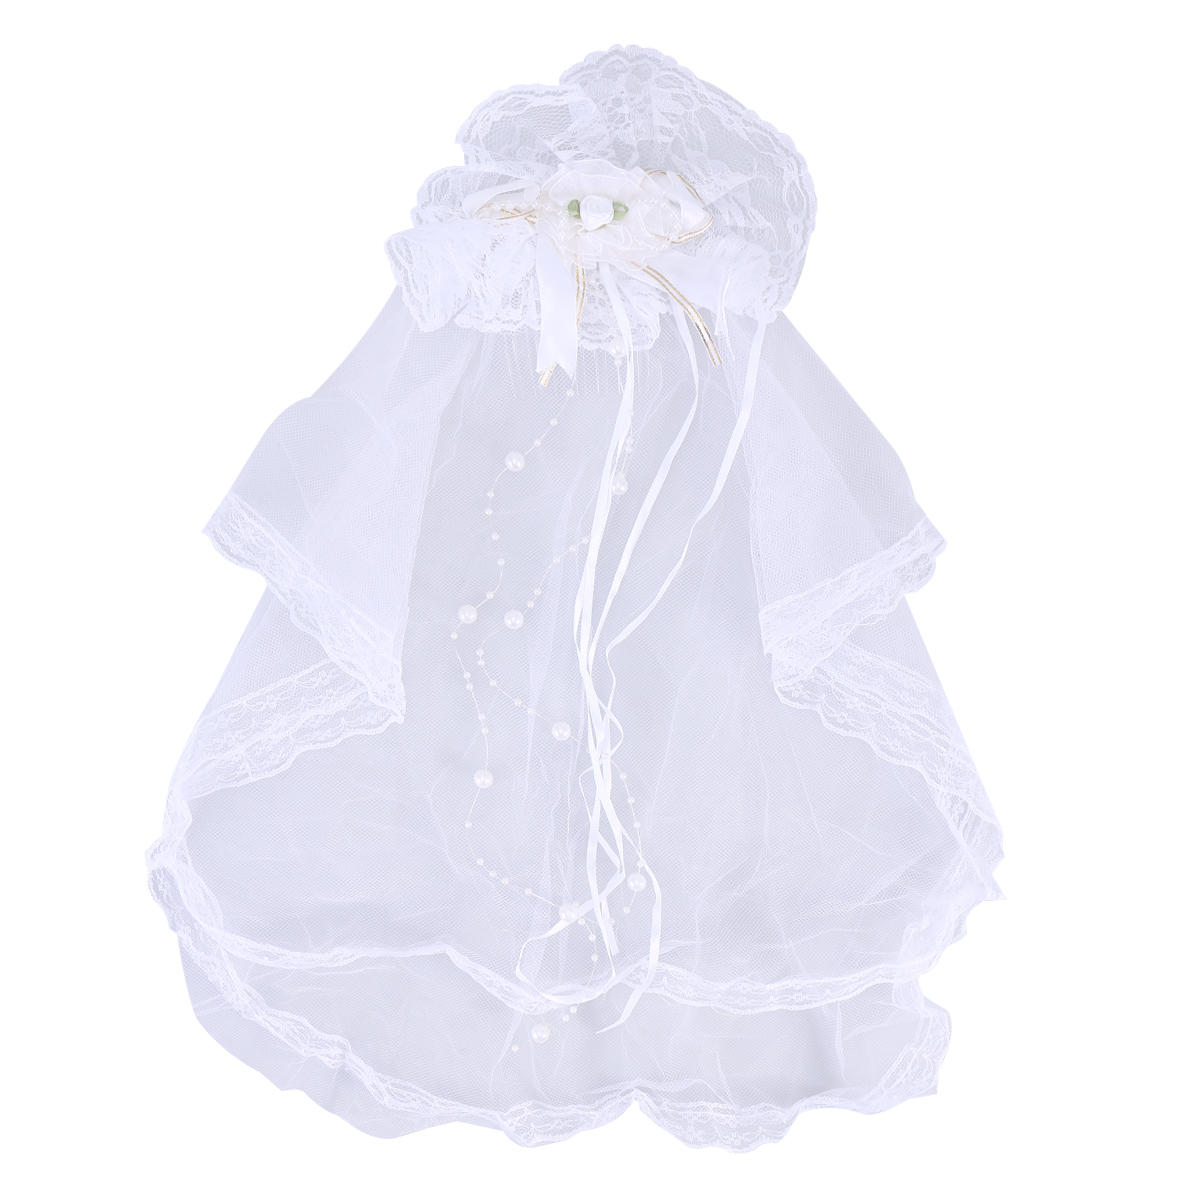 Girls Children Lace Bowknot Wedding Veil Head Hair Decoration Wedding Yarn Communion Off-White Floral Veil (White)